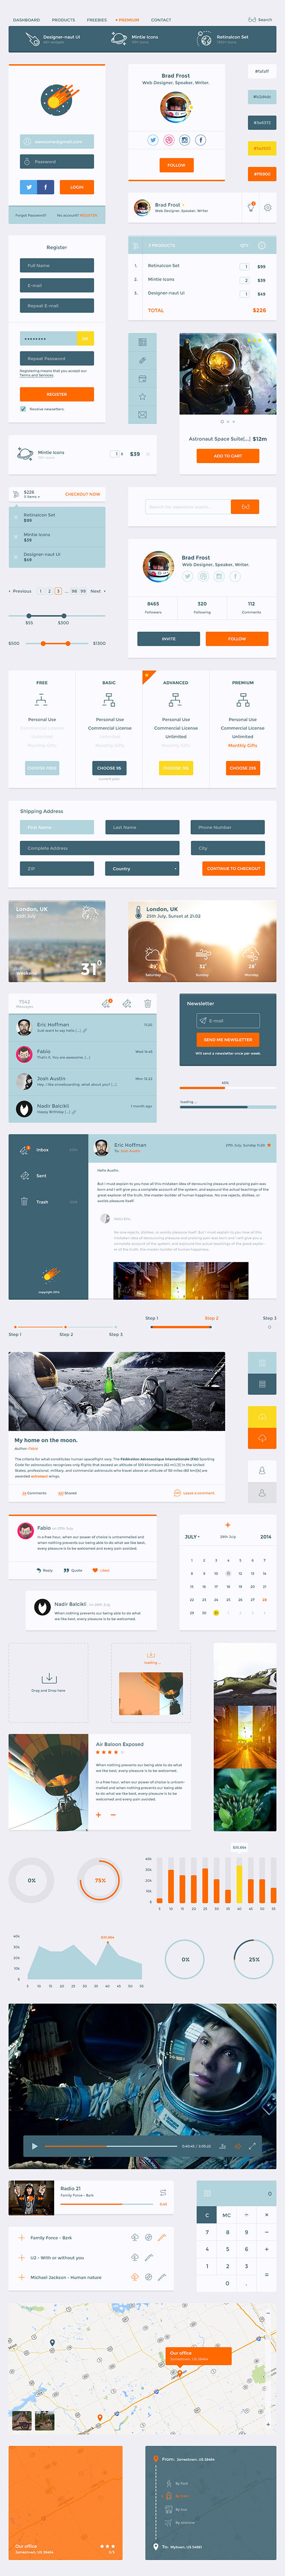 Designer-naut UI Kit | Tech & ALL – PSD, Tech News, and other resources for free